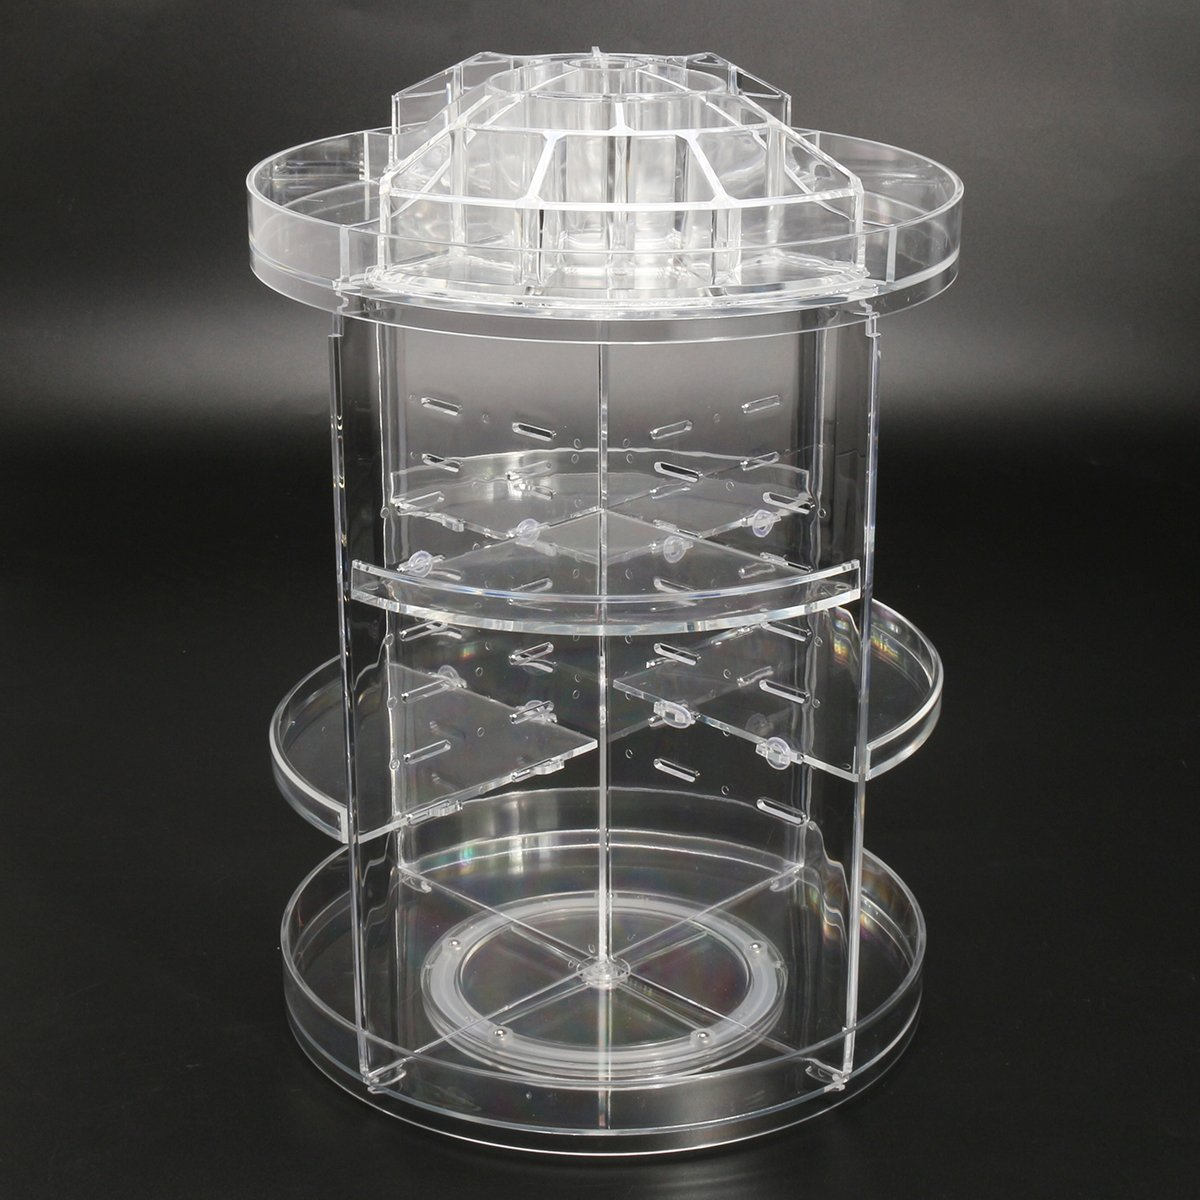 3 Tier Acrylic Cosmetic Makeup Jewelry 360° Rotating Storage Organizer Case